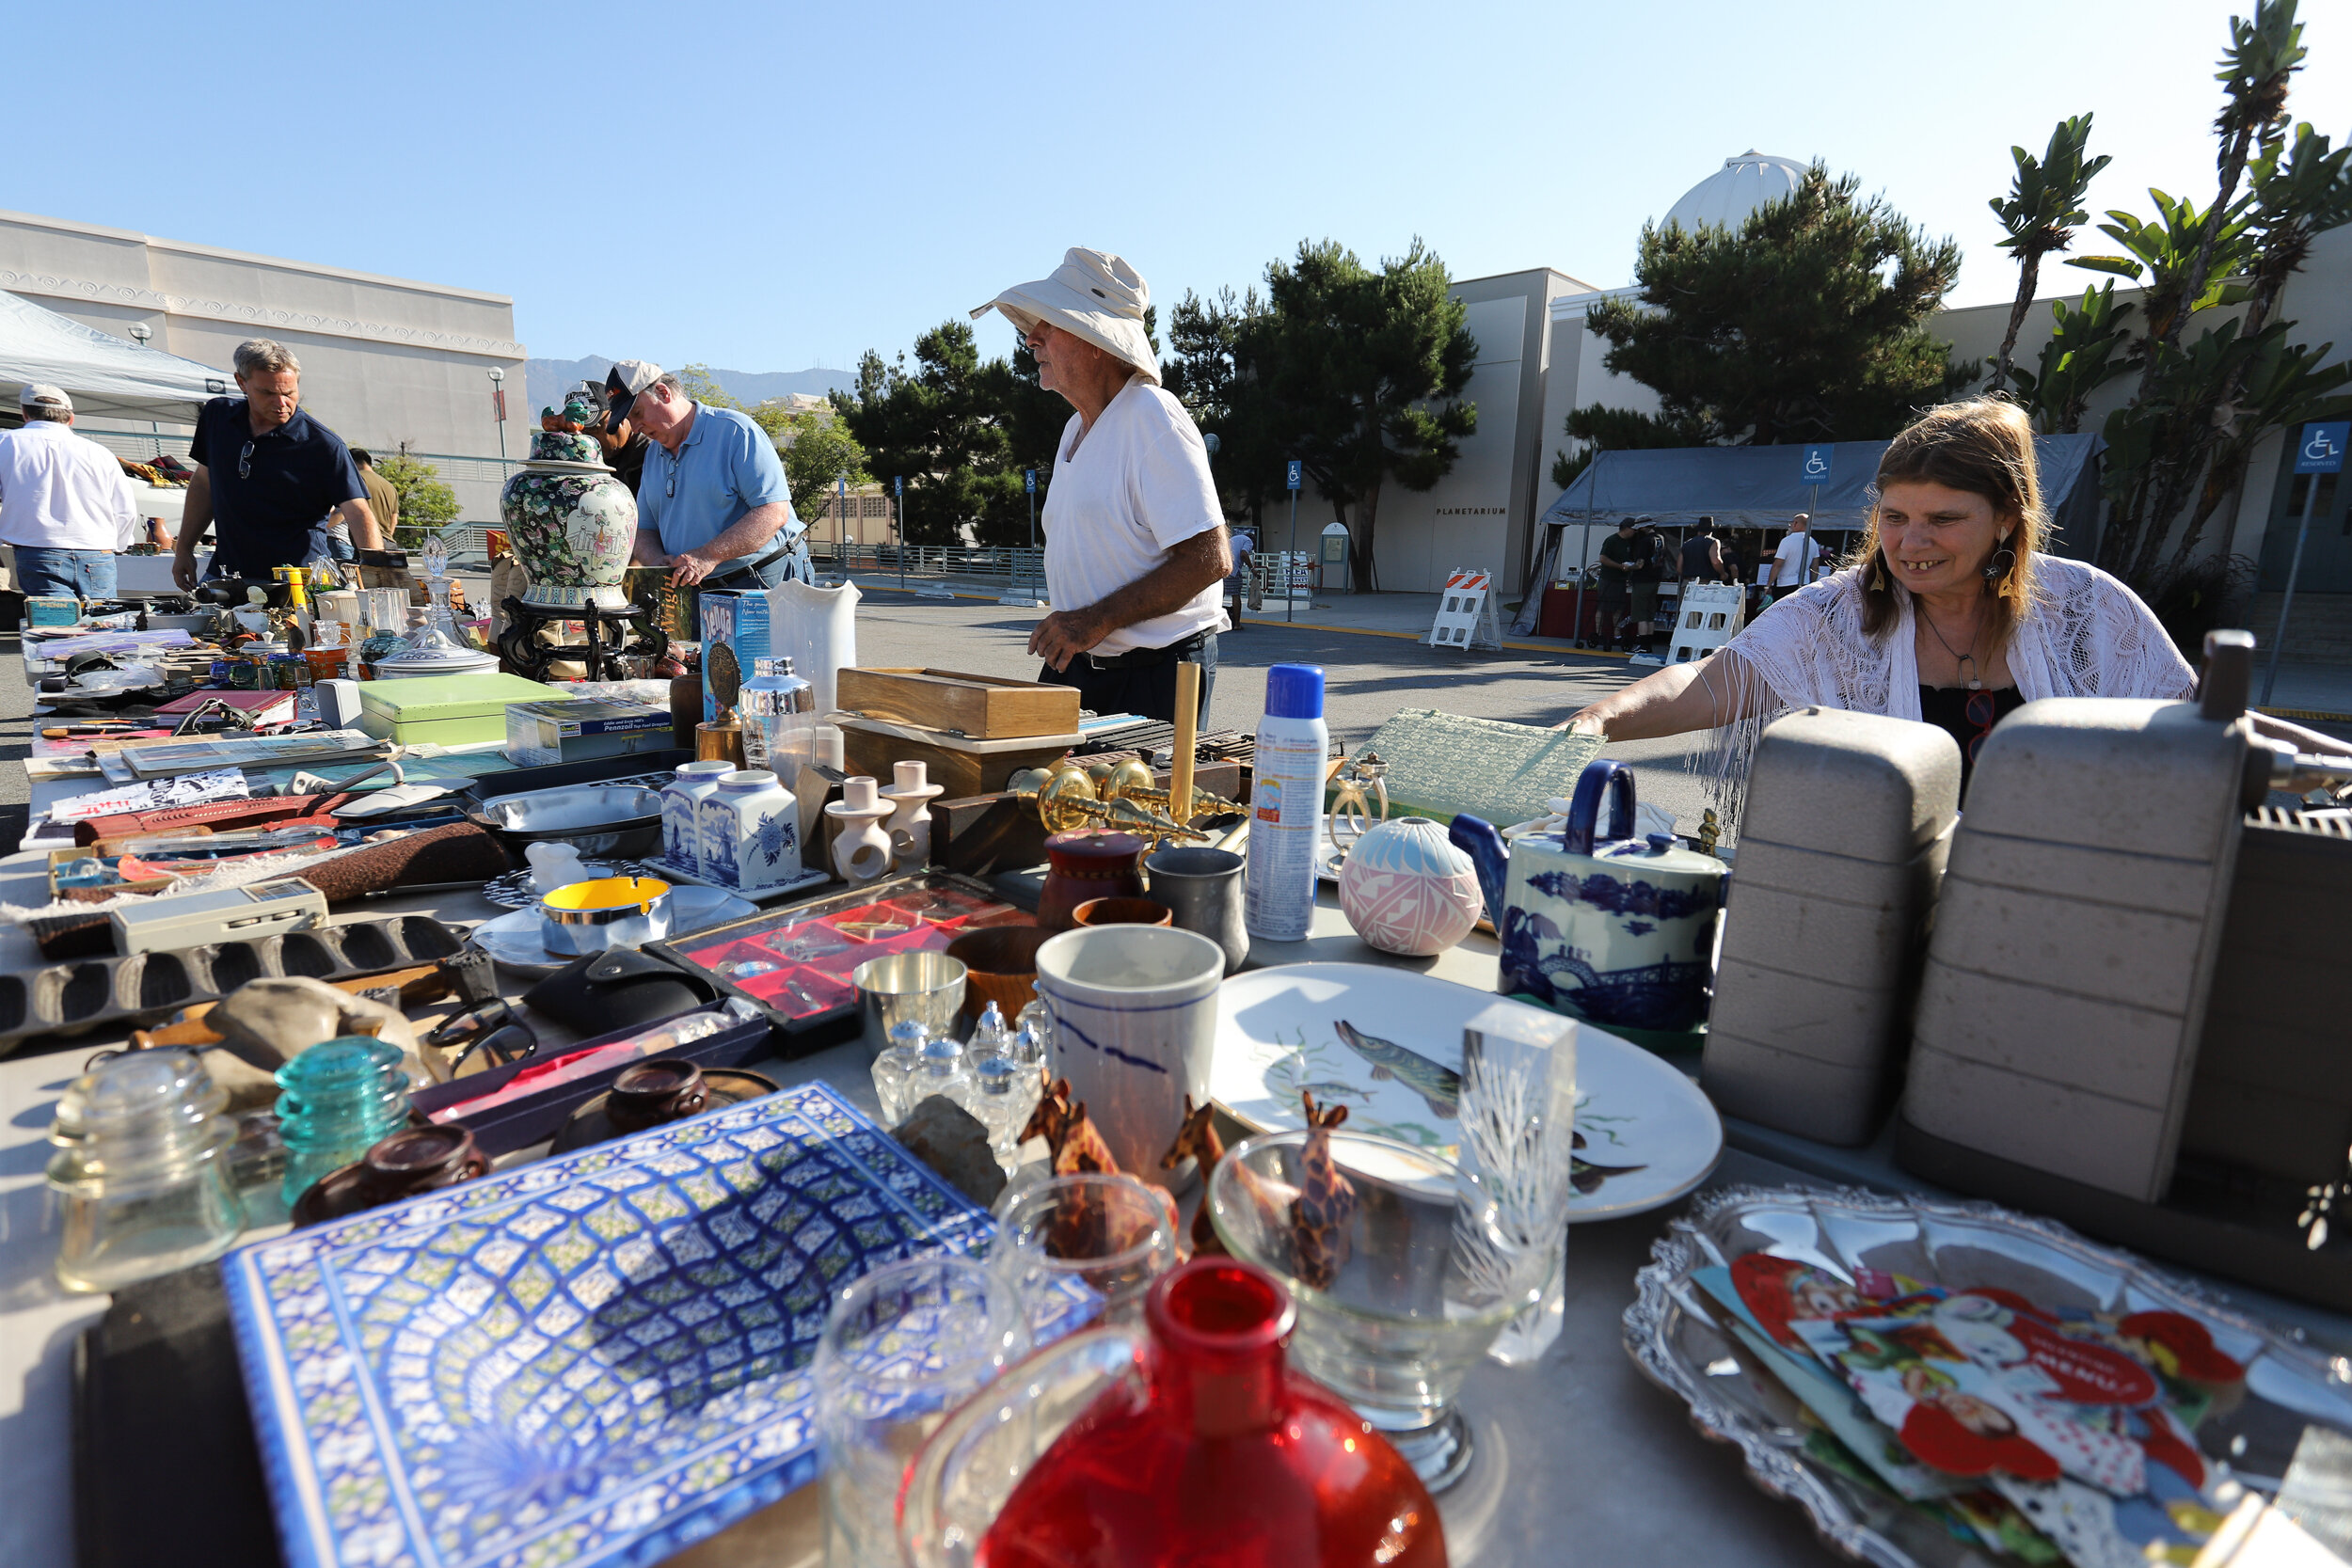 Nicholas Slobin/ Courier Attendees browse goods for sale at the Pasadena City College Flea Market on Sunday, September 1, 2019.